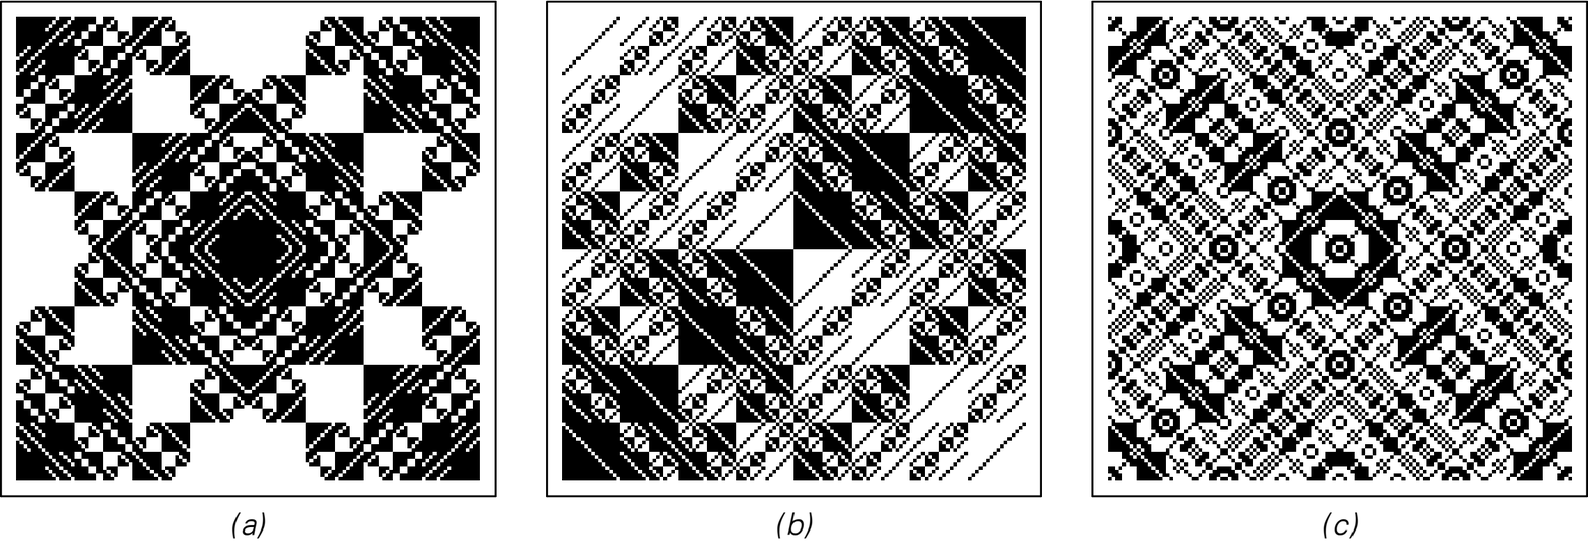 [Patterns from] arbitrary digit operations image 1